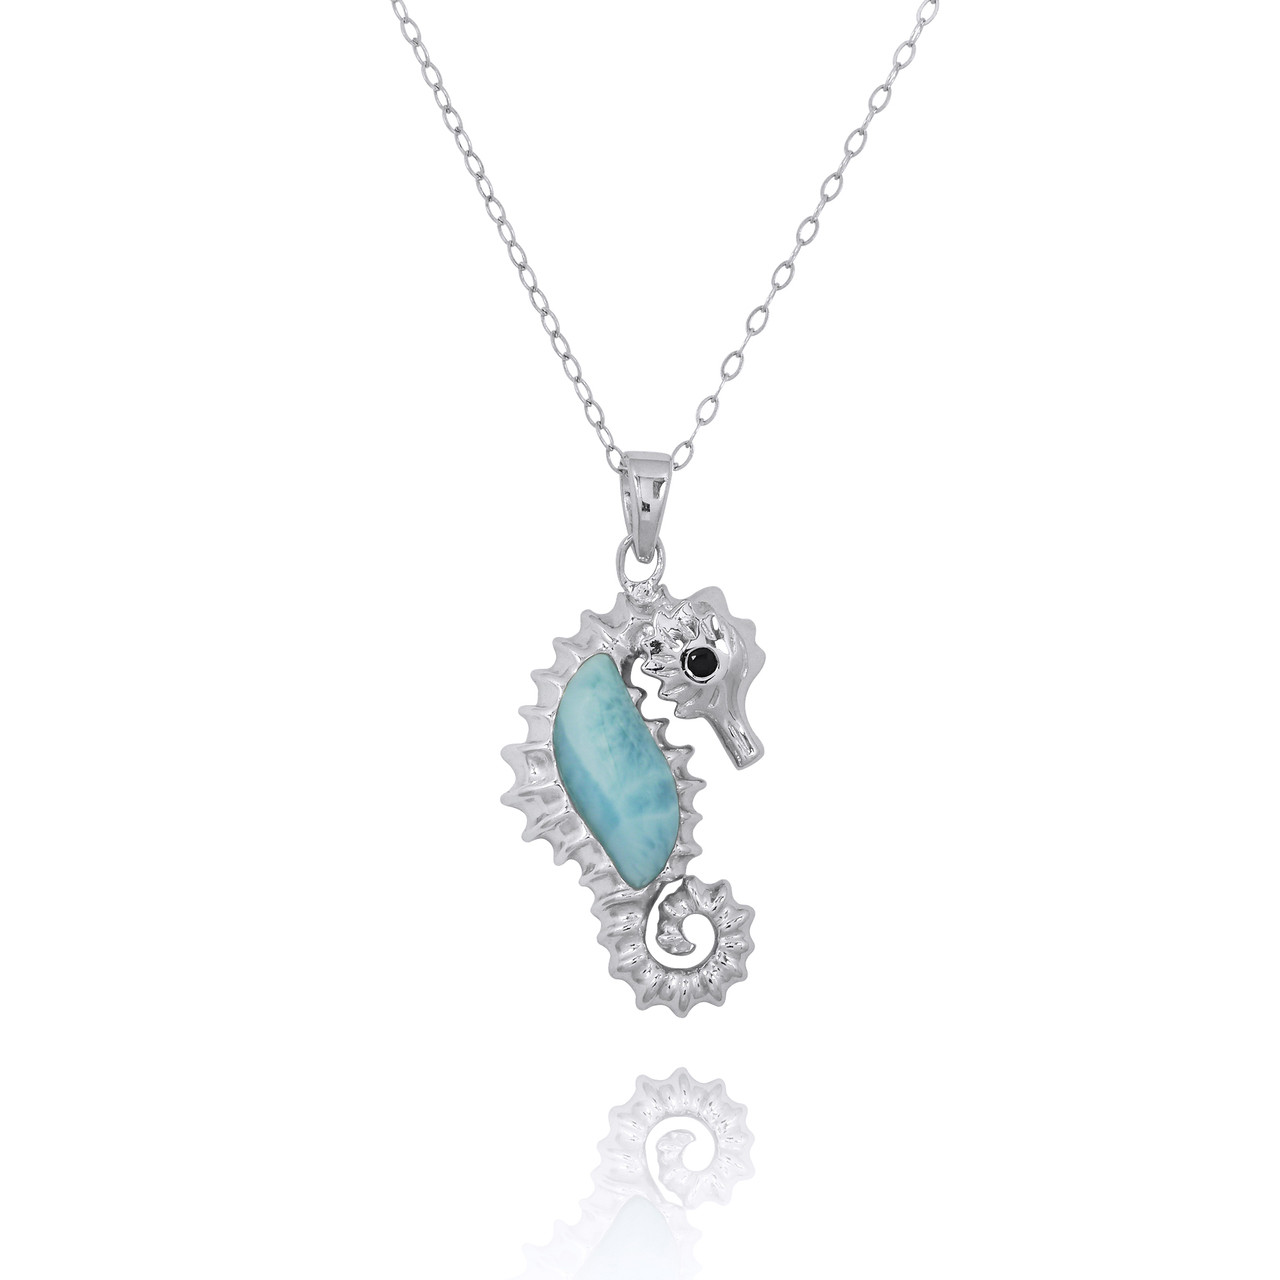 Sterling Silver Seahorse Pendant with Larimar and Black Spinel